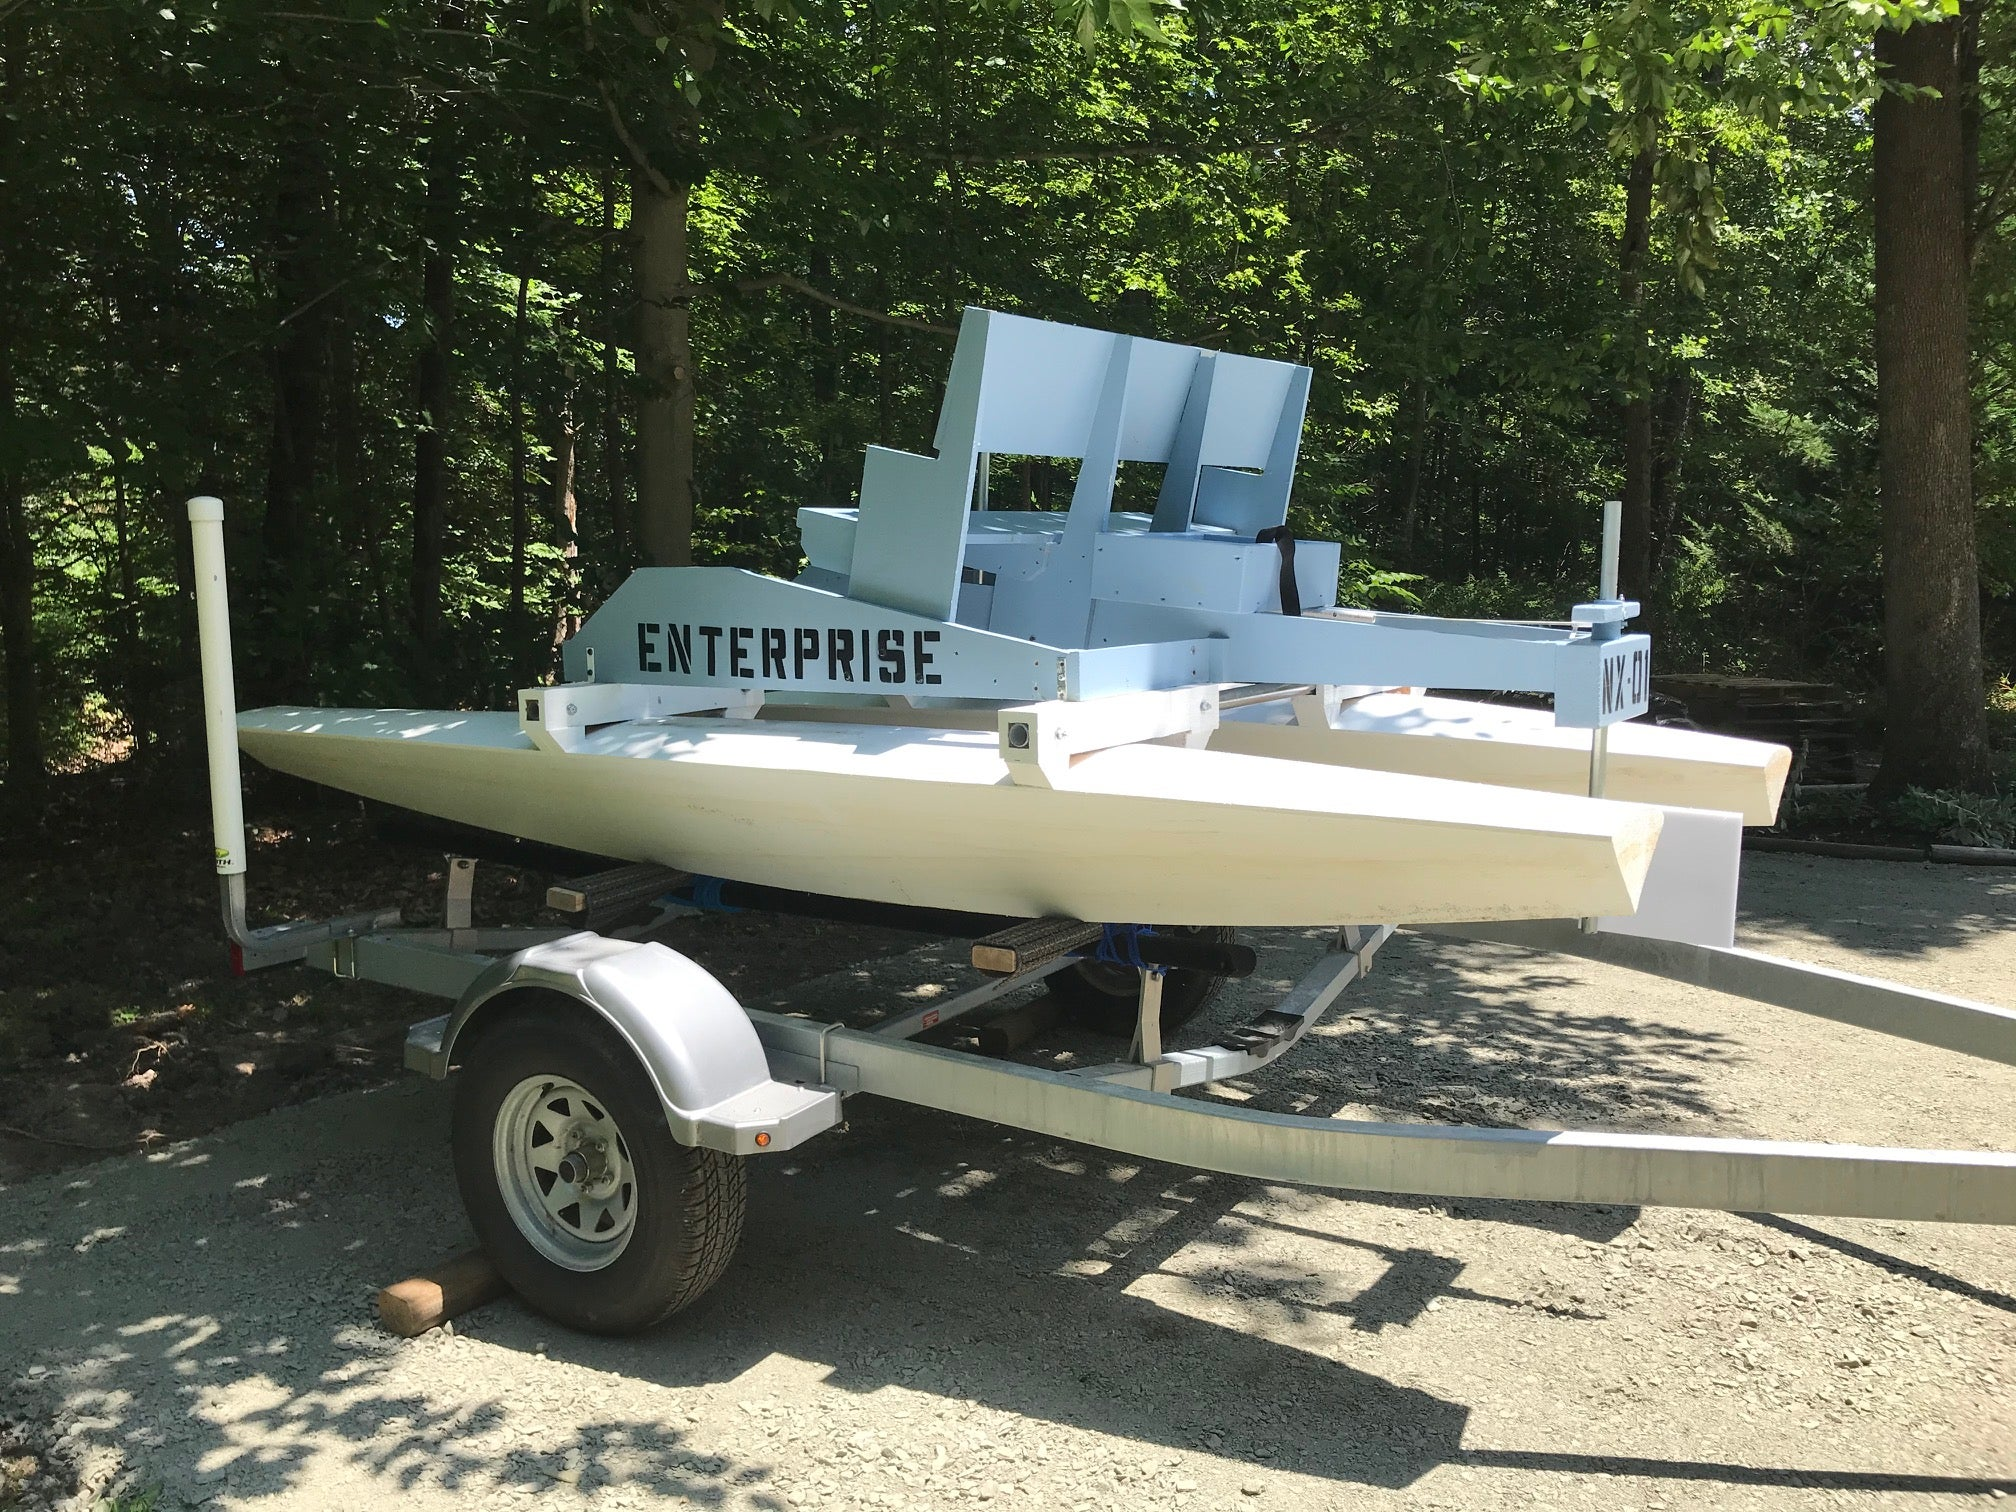 The finished boat hooked up to Riti's trailer